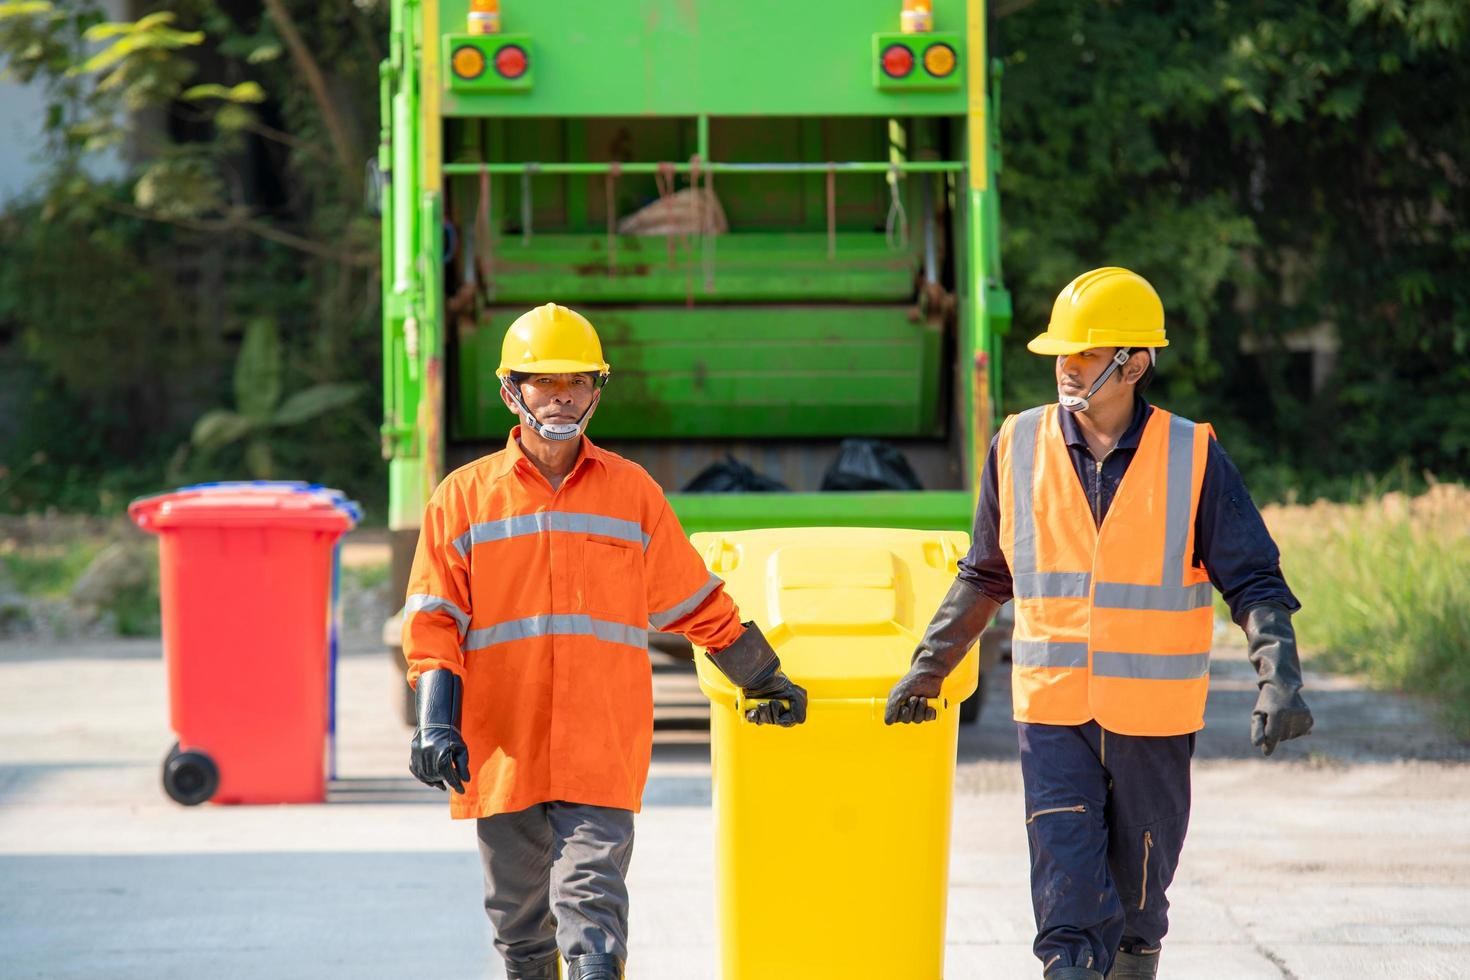 Garbage collectors with bins and truck photo